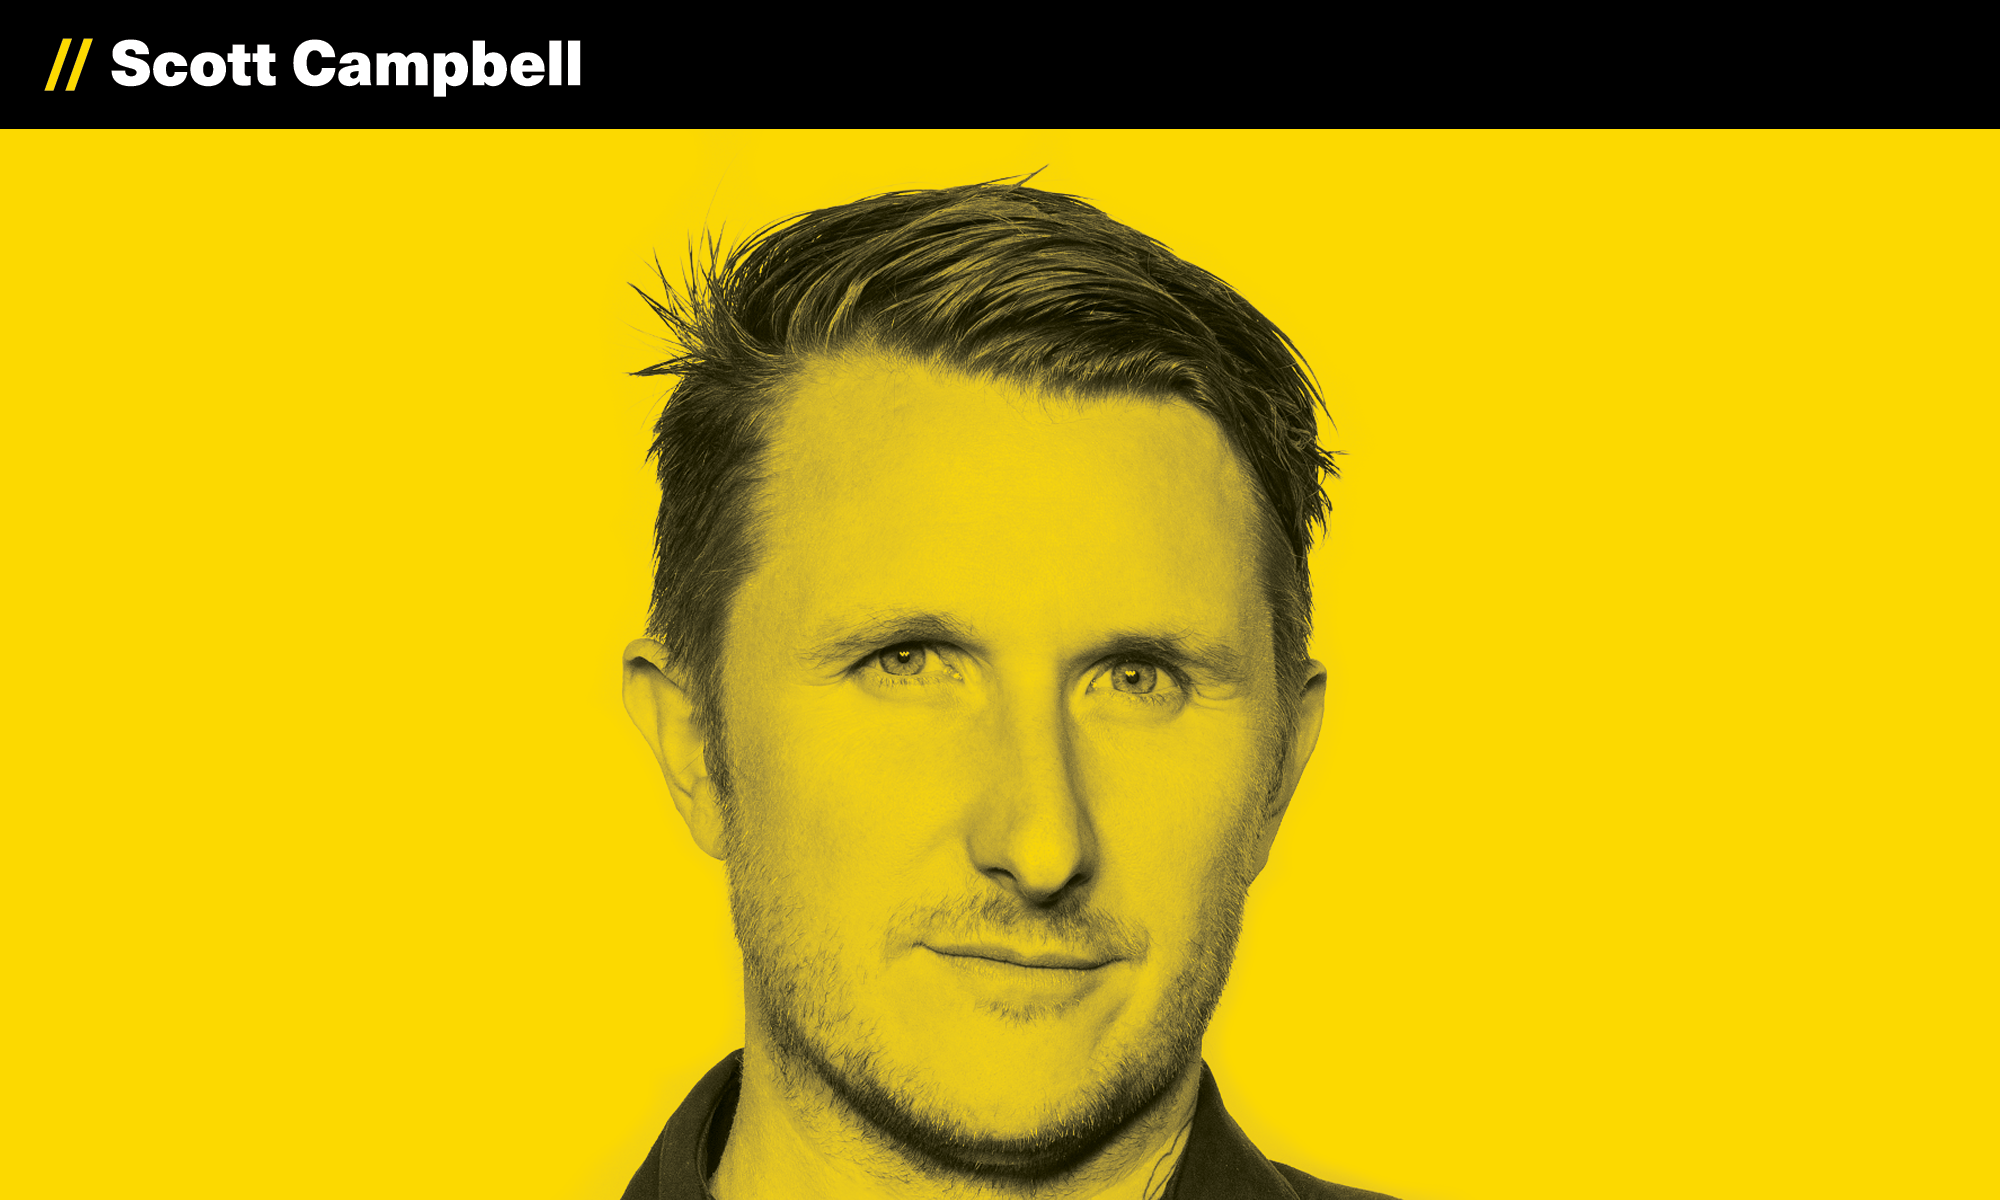 Scott Campbell, Beboe, The Founder Hour, Podcast